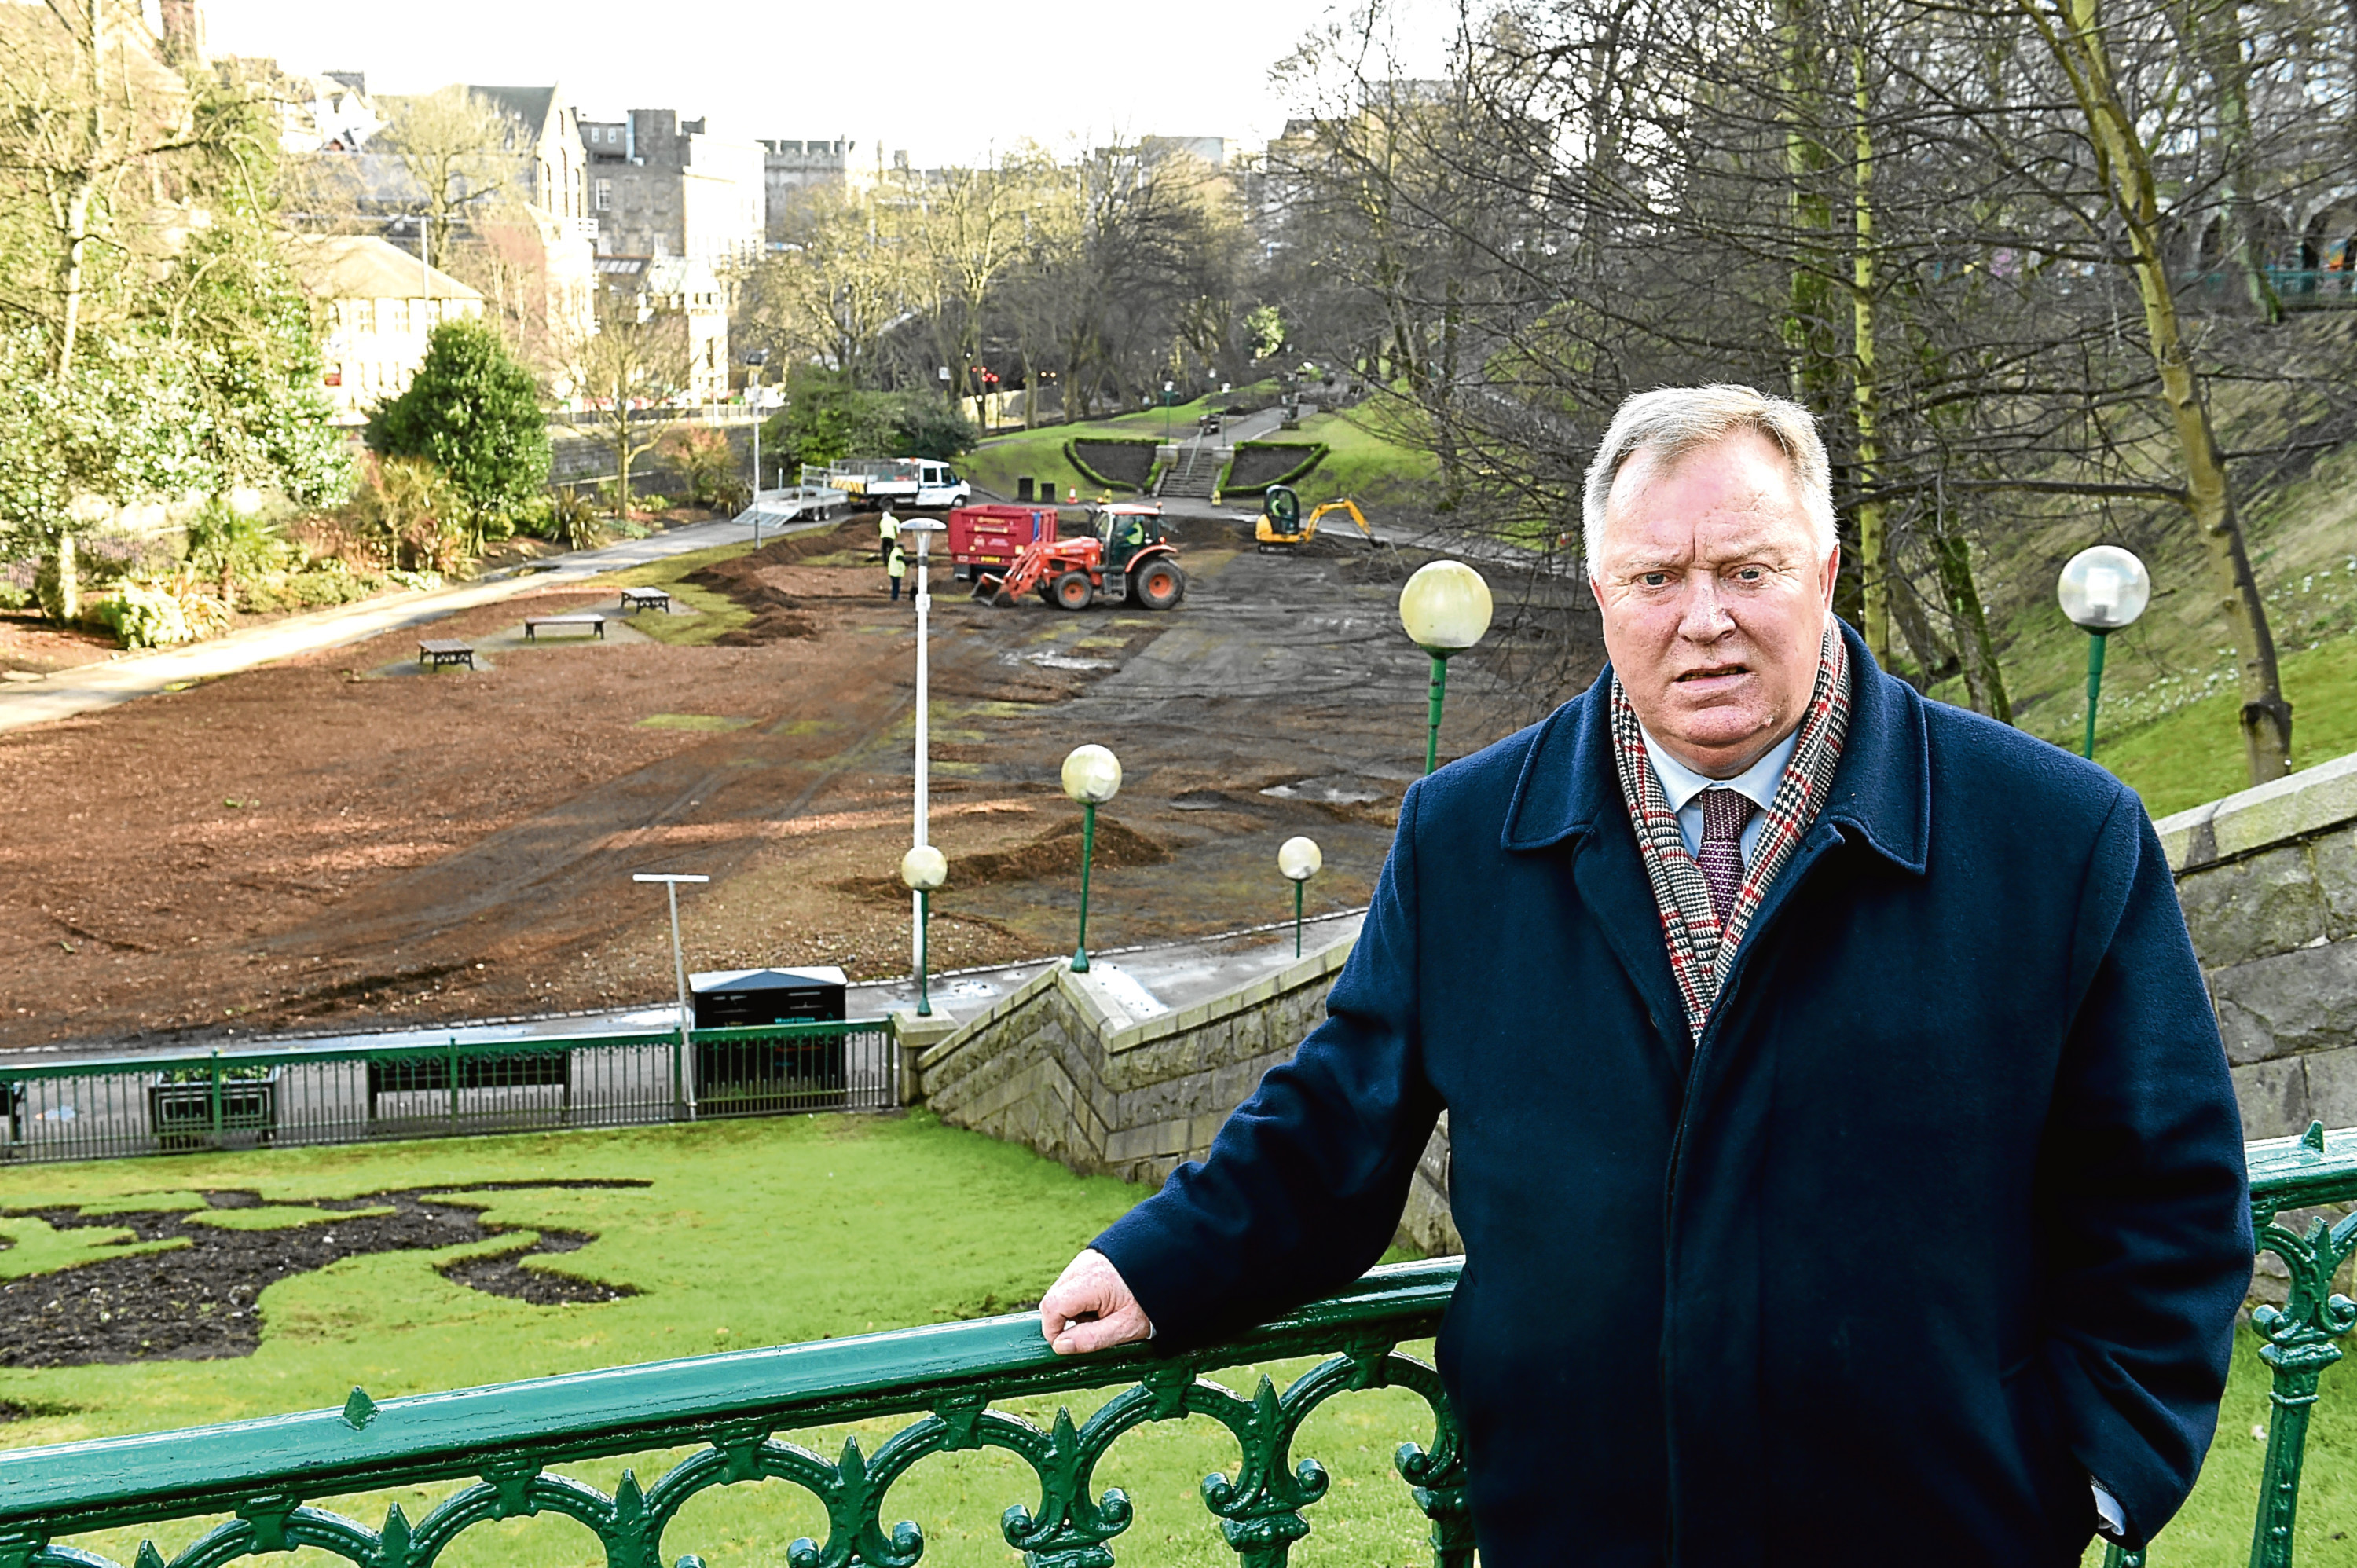 Union Terrace Gardens getting tidied up after SPECTRA leaving bark over the grass. Councillor Bill Cormie is complaining about the mess. Picture by COLIN RENNIE   February 20, 2018.